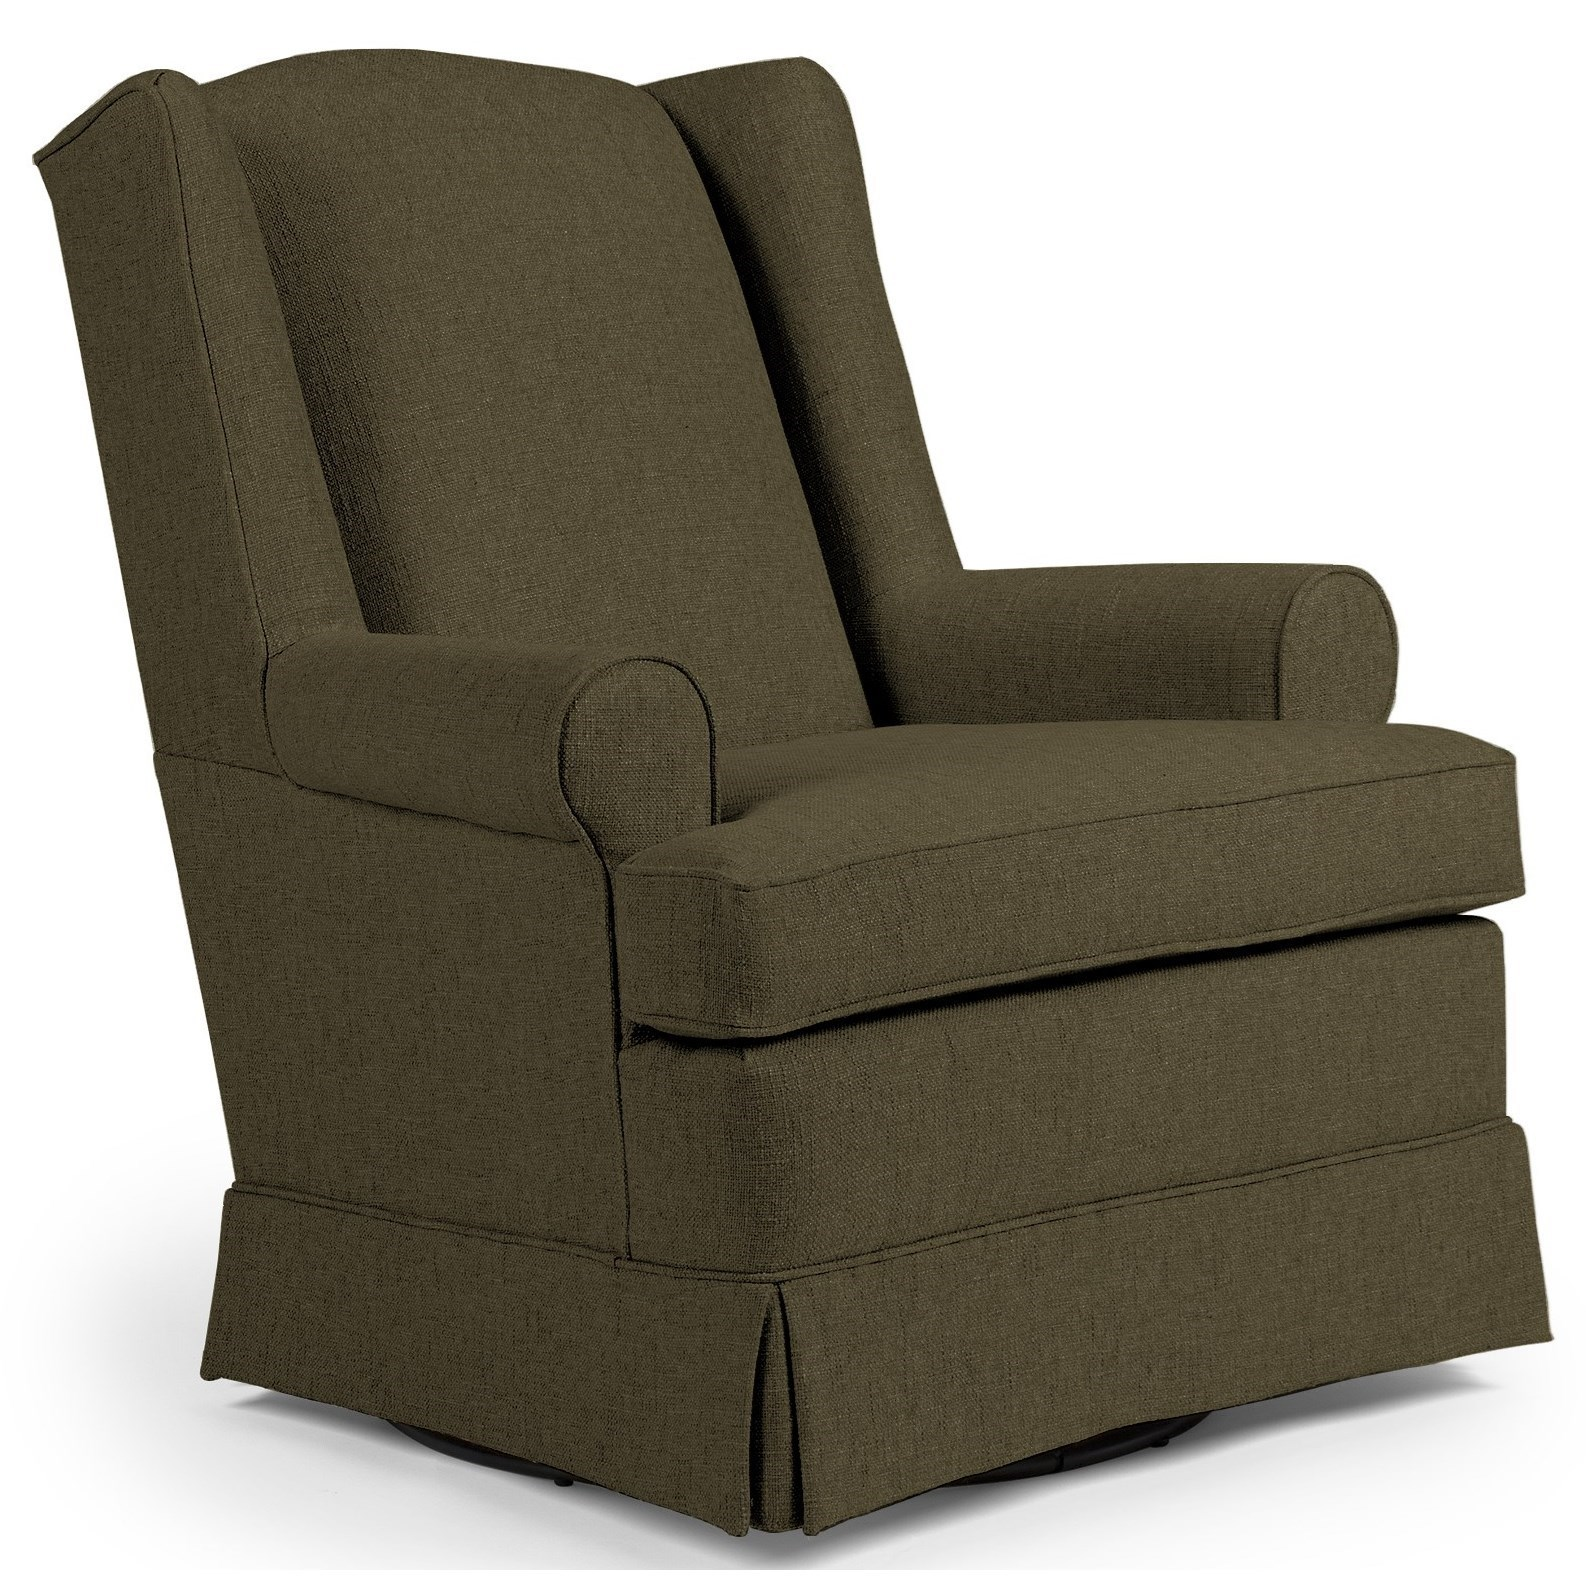 Swivel Glide Chairs Roni Swivel Glider Chair by Best Home Furnishings at Lucas Furniture & Mattress